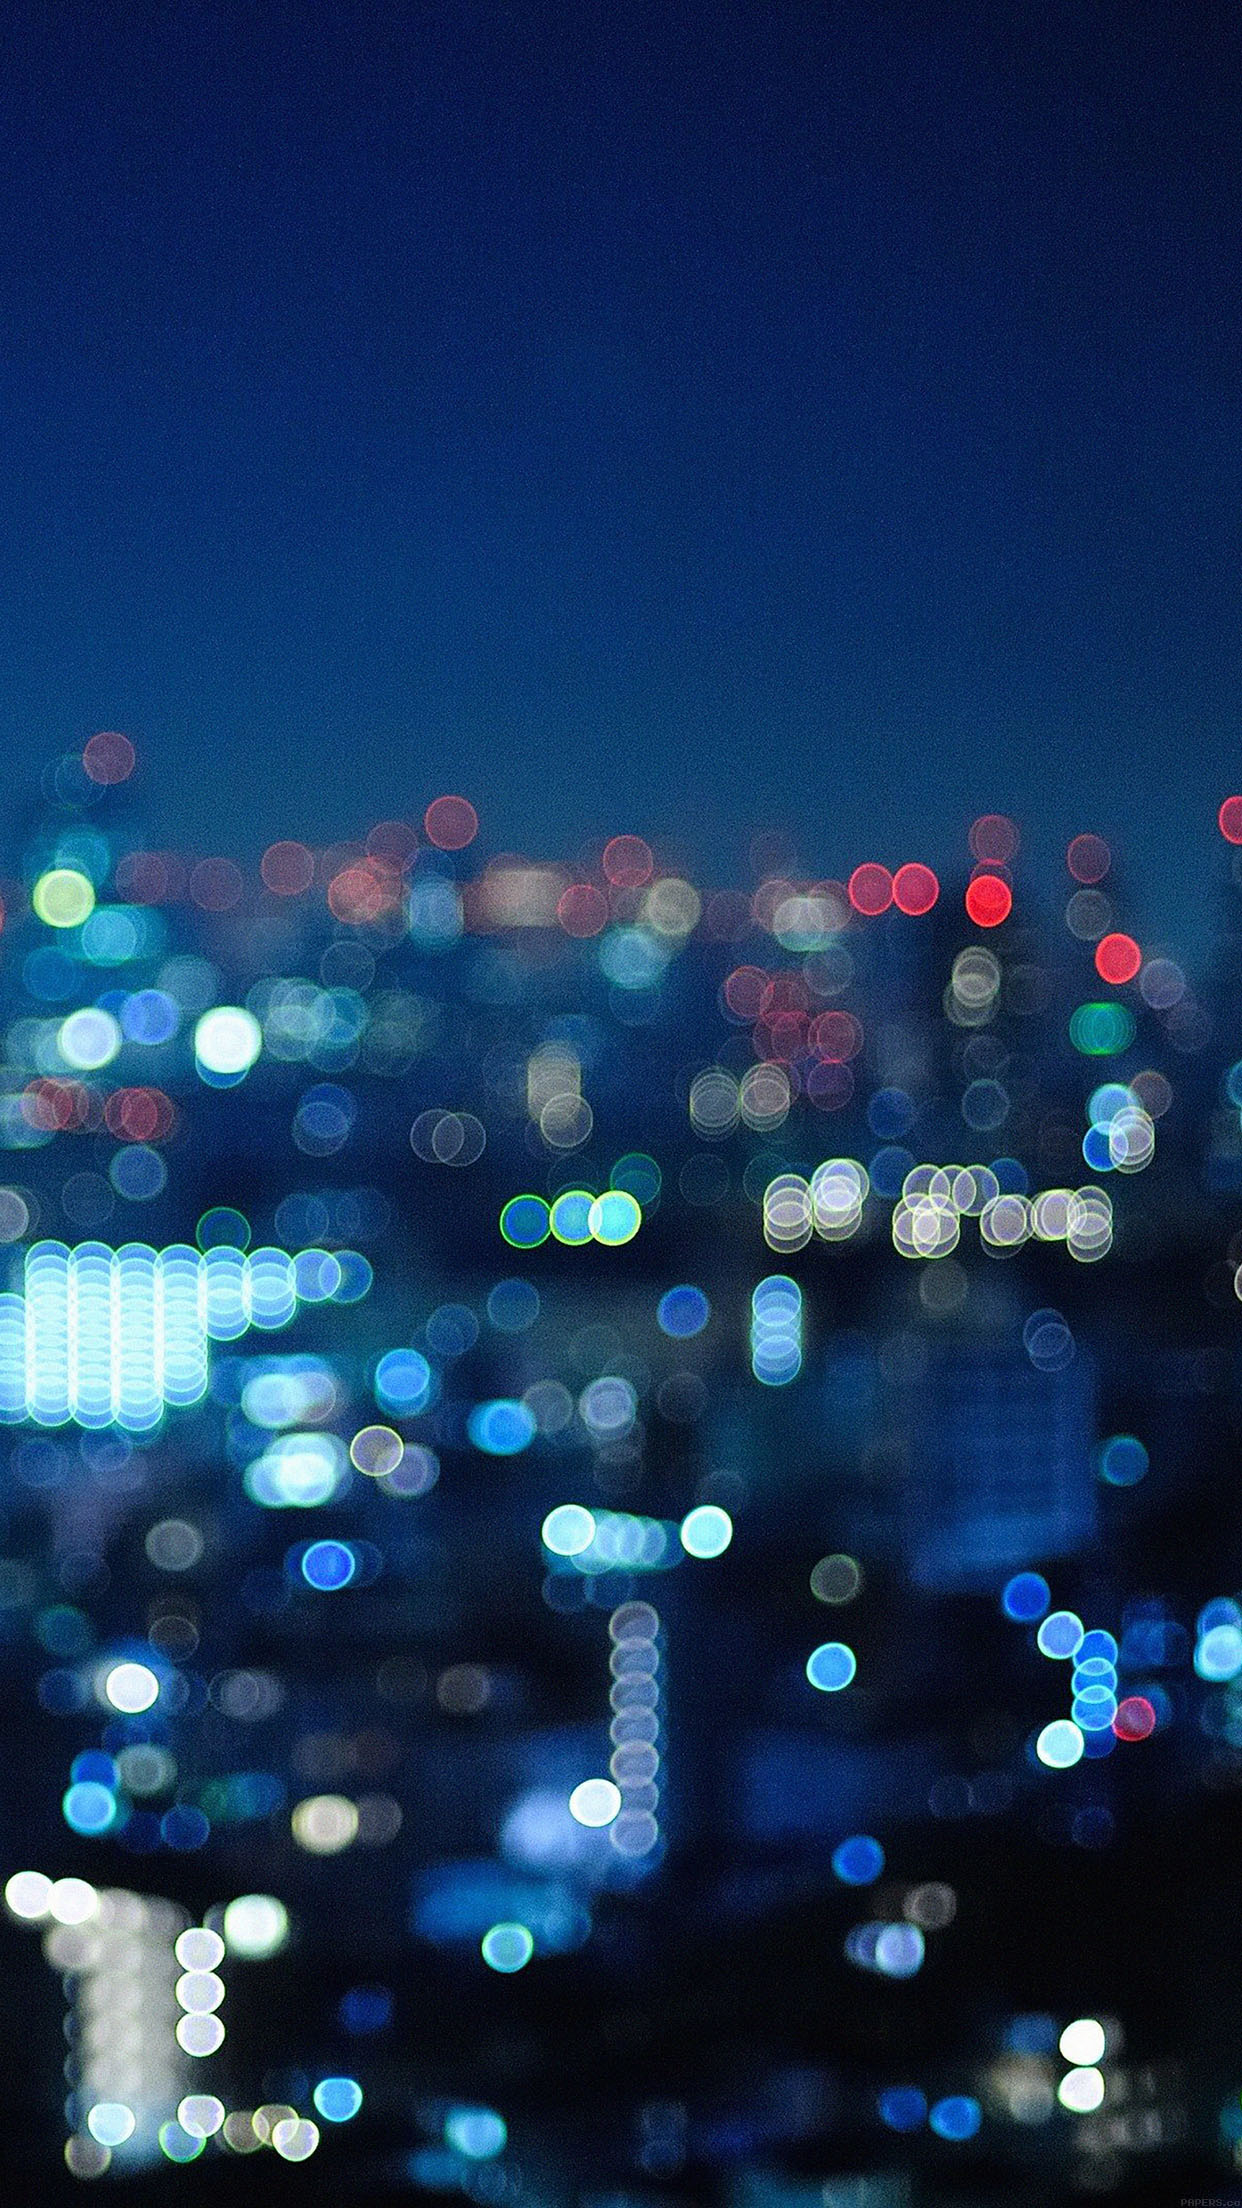 Download Wallpaper Night Abstract - Ying-City-Night-Bokeh  Collection.jpg